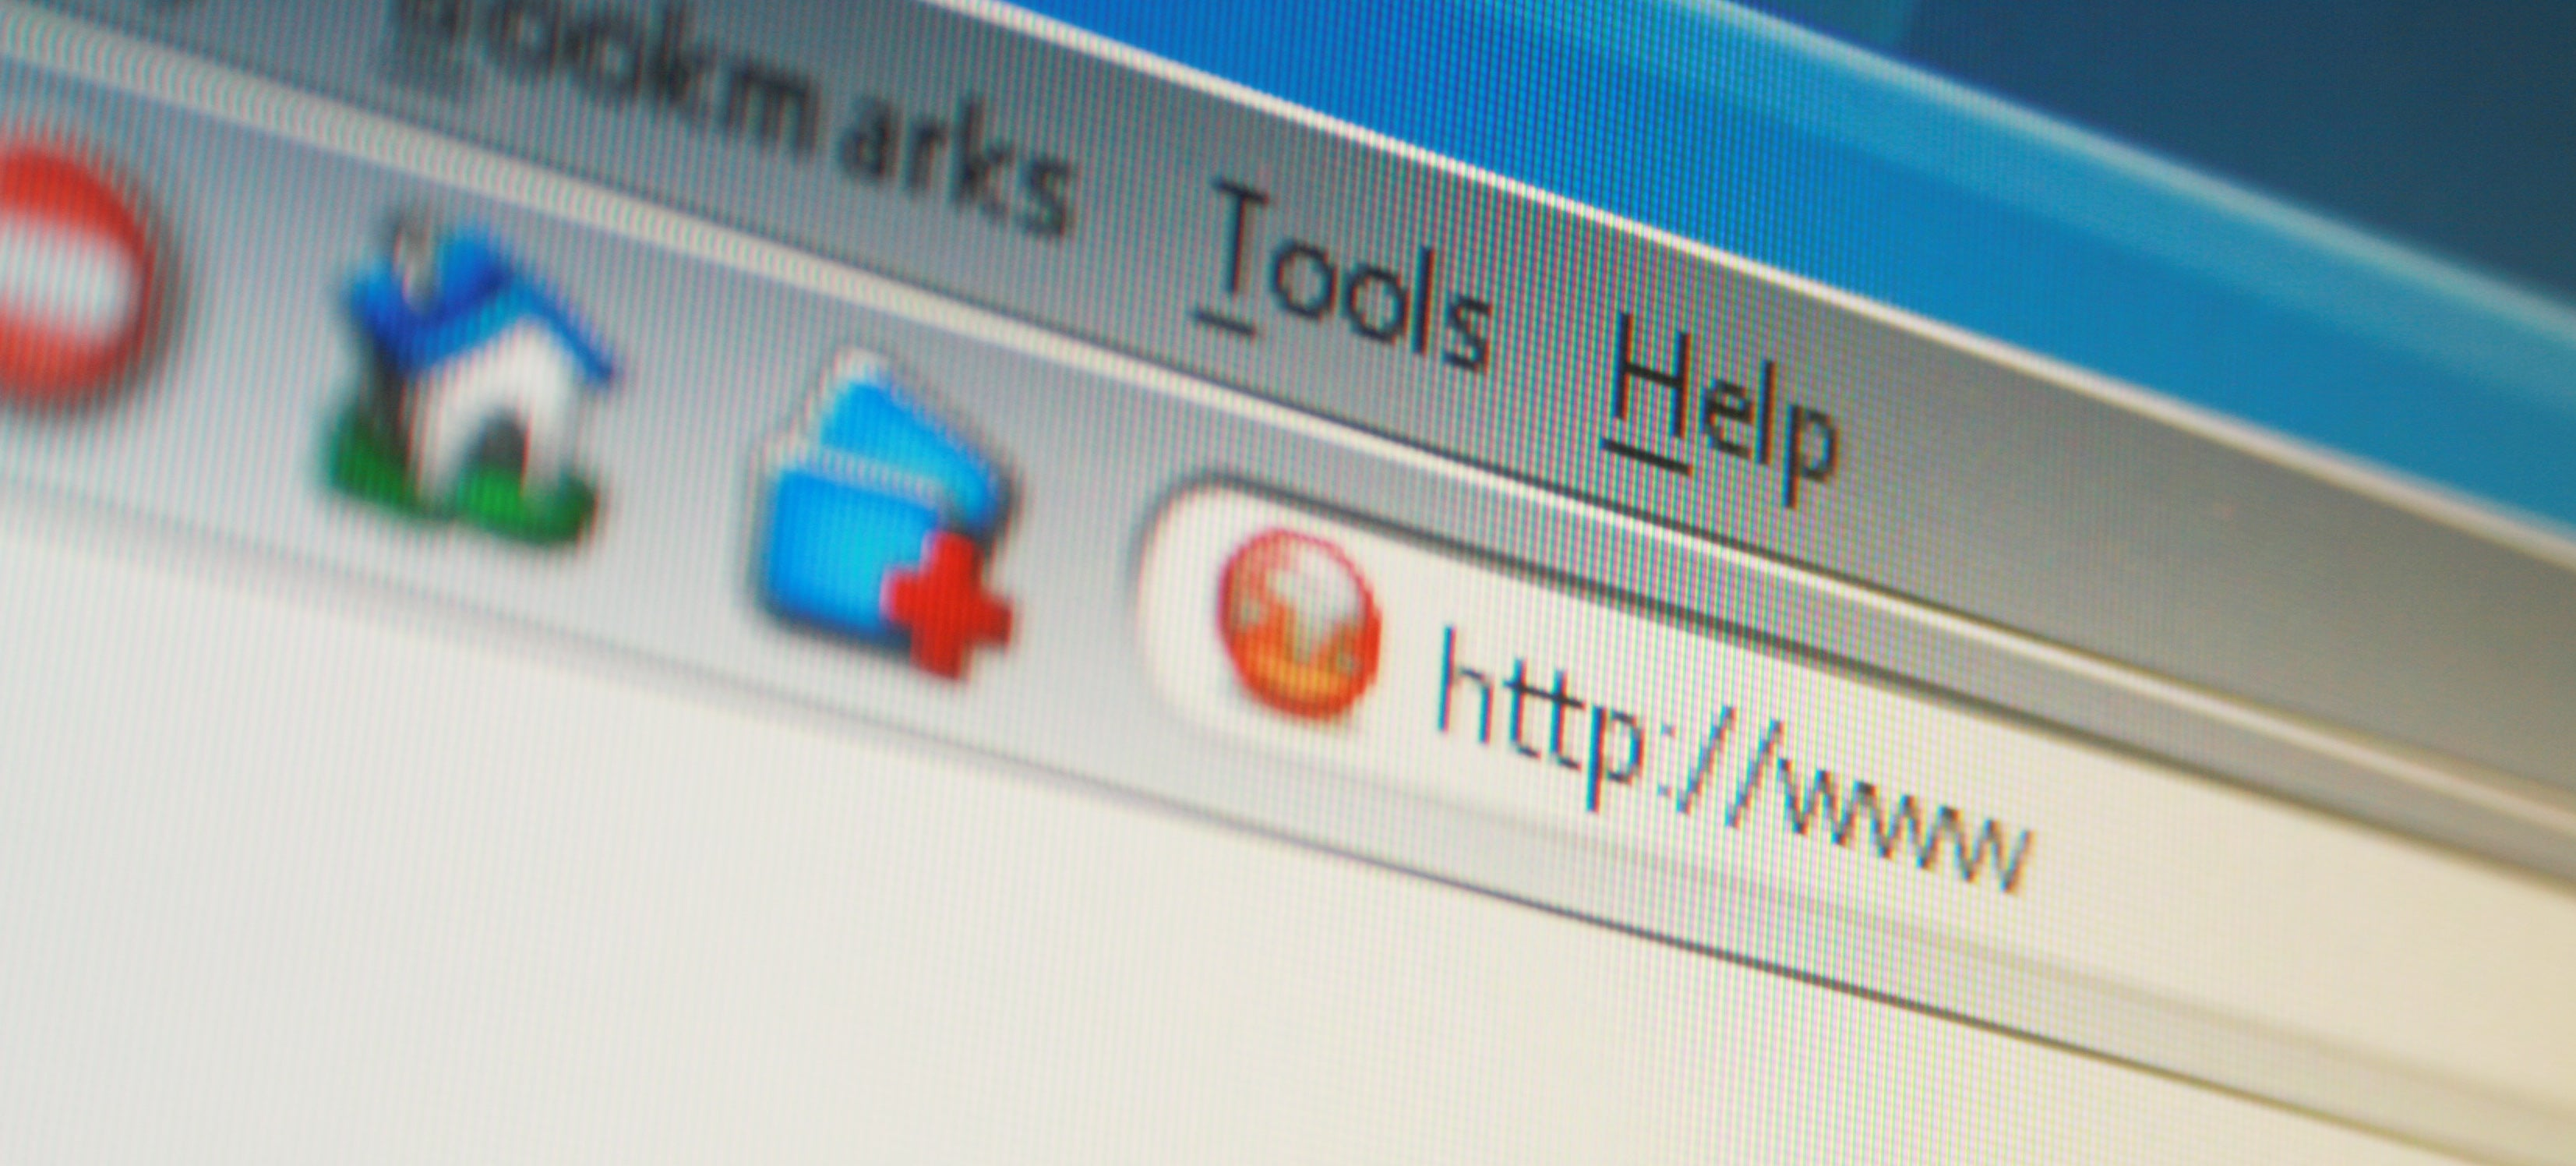 Second Coming: The First HTTP Update In 16 Years, HTTP/2, Is Finished